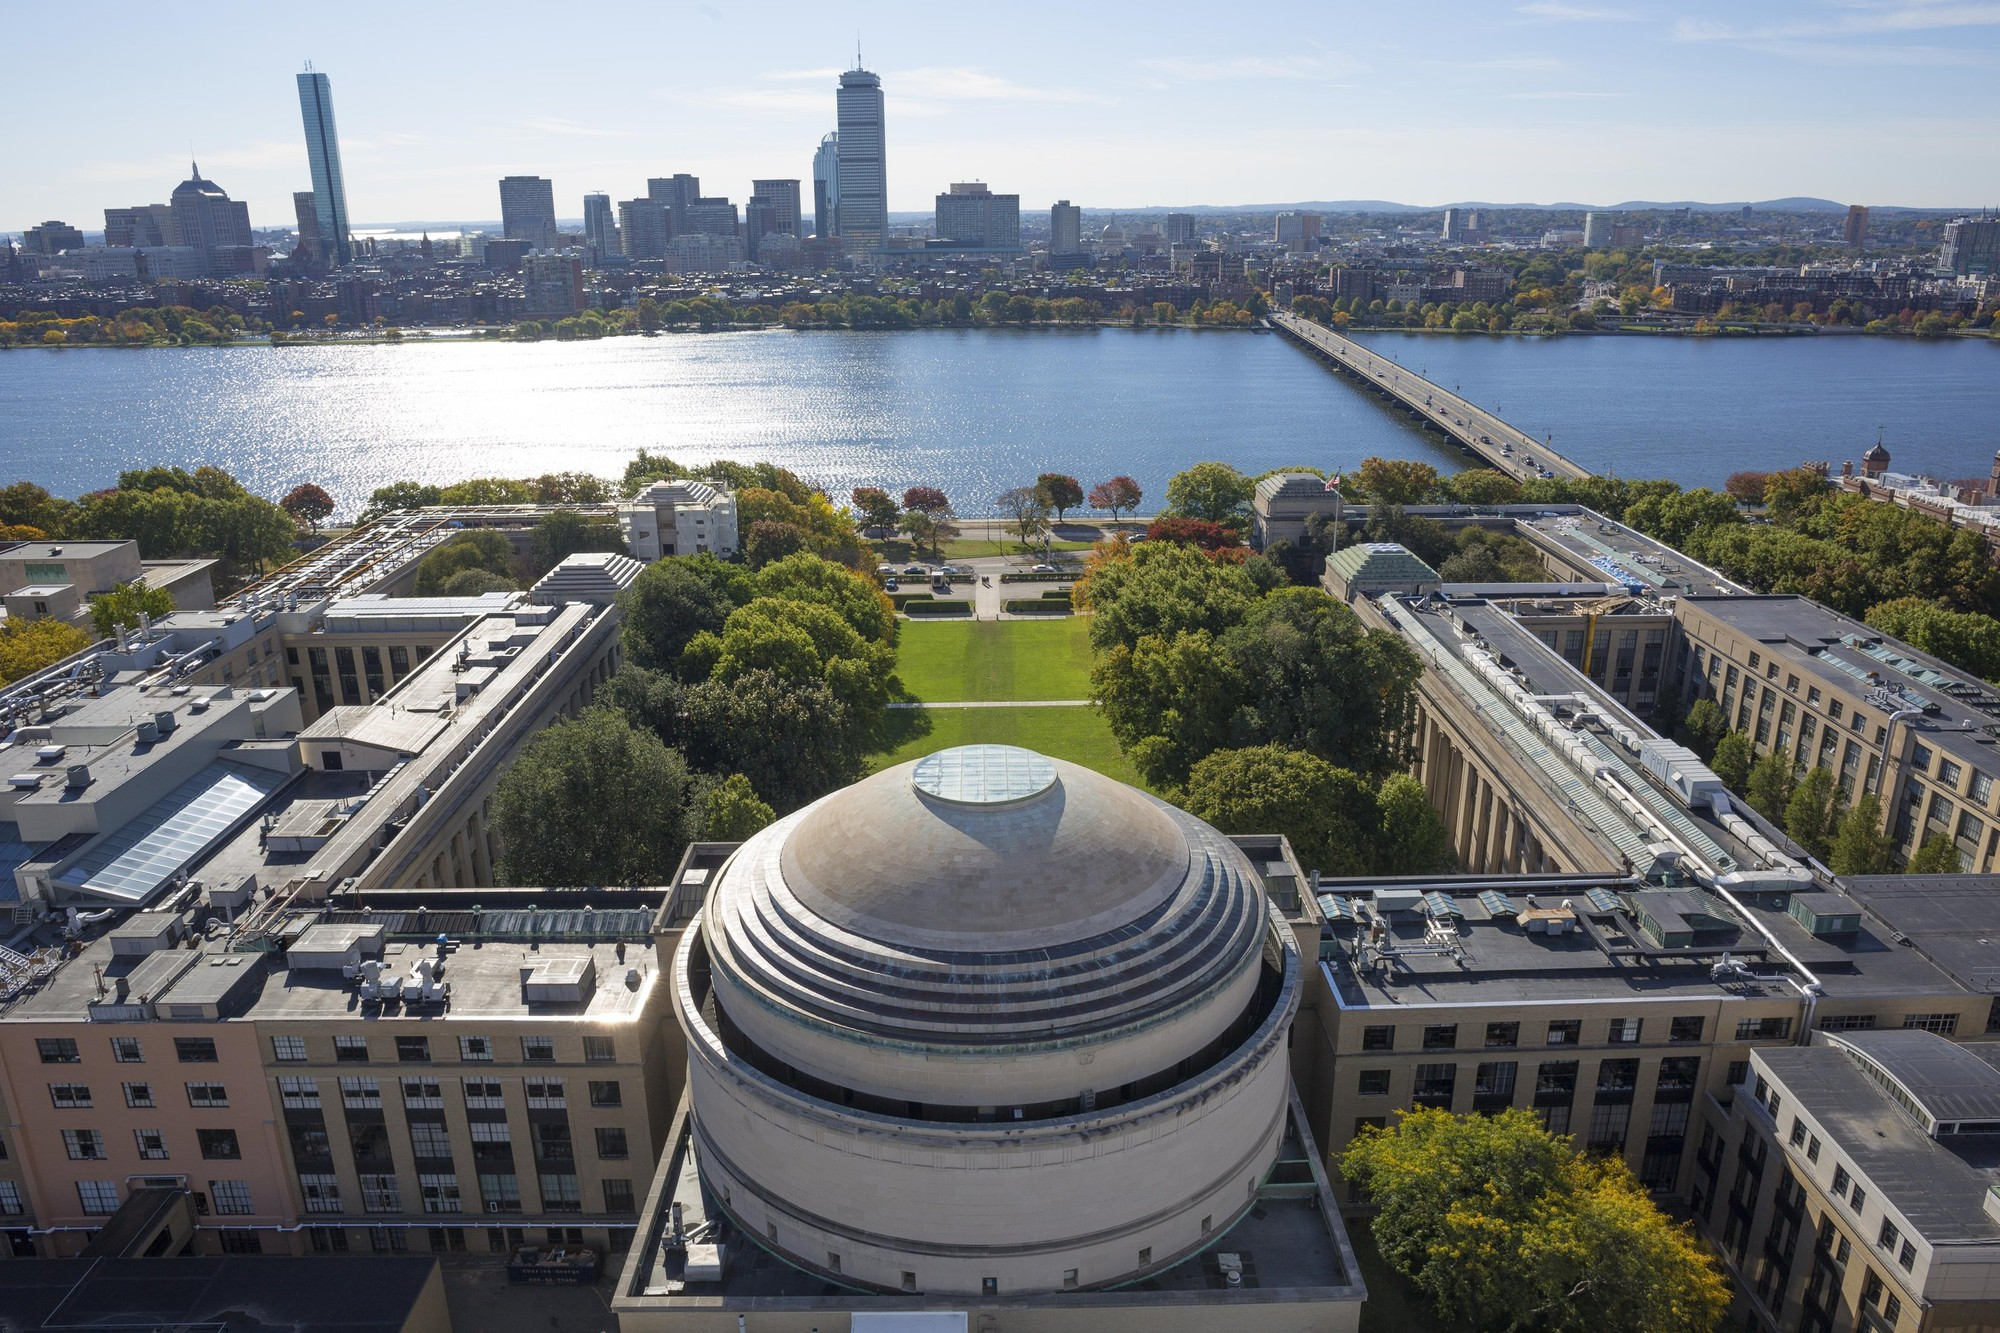 Bird's eye view of MIT University's Great Dome with the Charles River and Harvard Bridge in the background